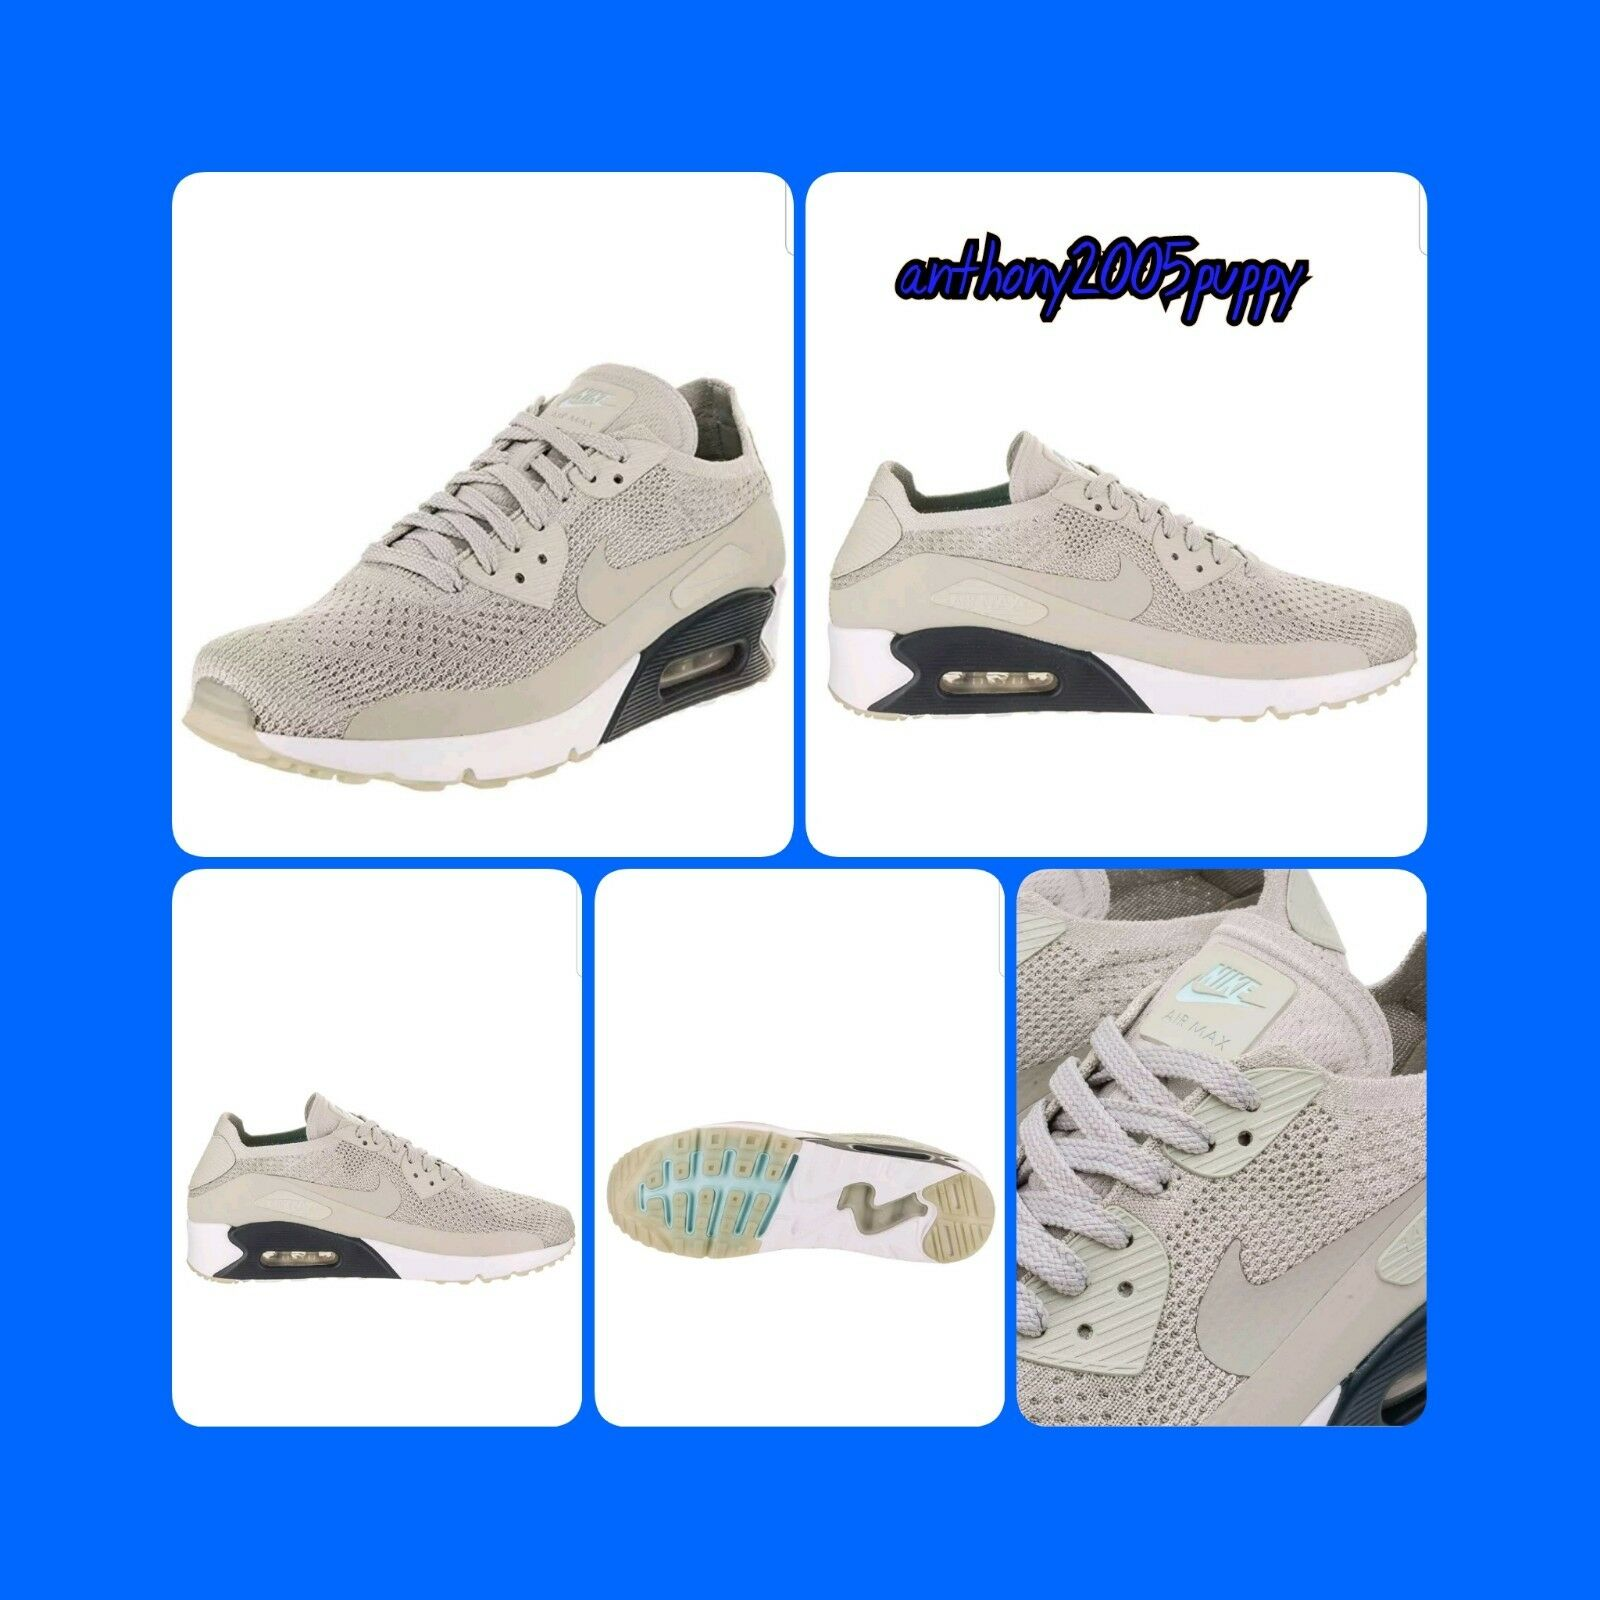 40, EU 6 UK 875943 fliegenstric, 2.0 Ultra 90 Max Air Nike